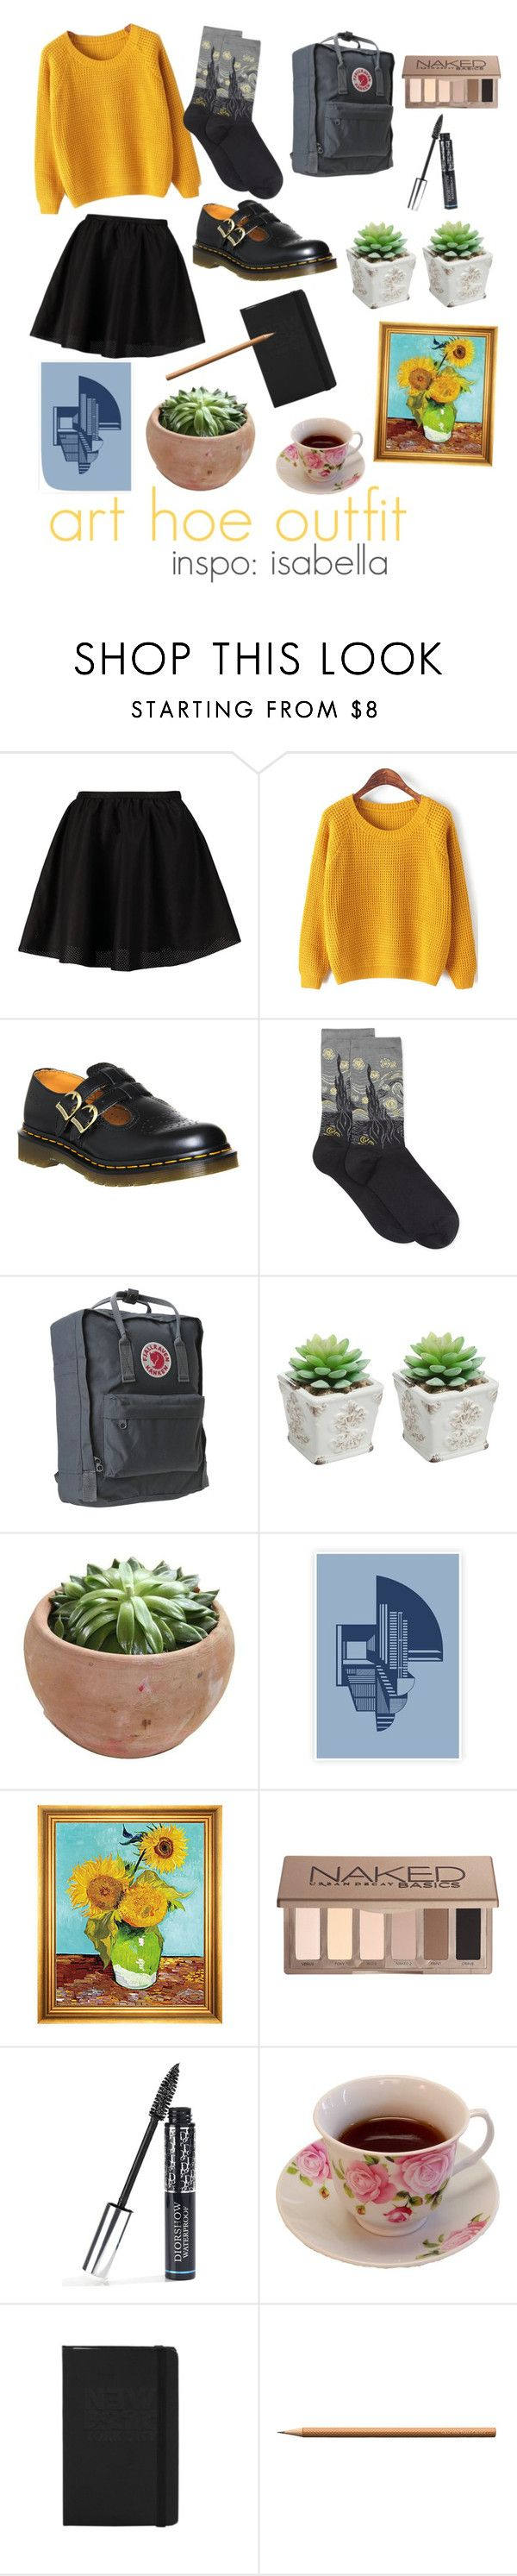 """""""art hoe outfit"""" by arrctiic ❤ liked on Polyvore featuring ONLY, Dr. Martens, HOT SOX, Fjällräven, Munn Works, Urban Decay, Christian Dior, Faber-Castell, women's clothing and women"""